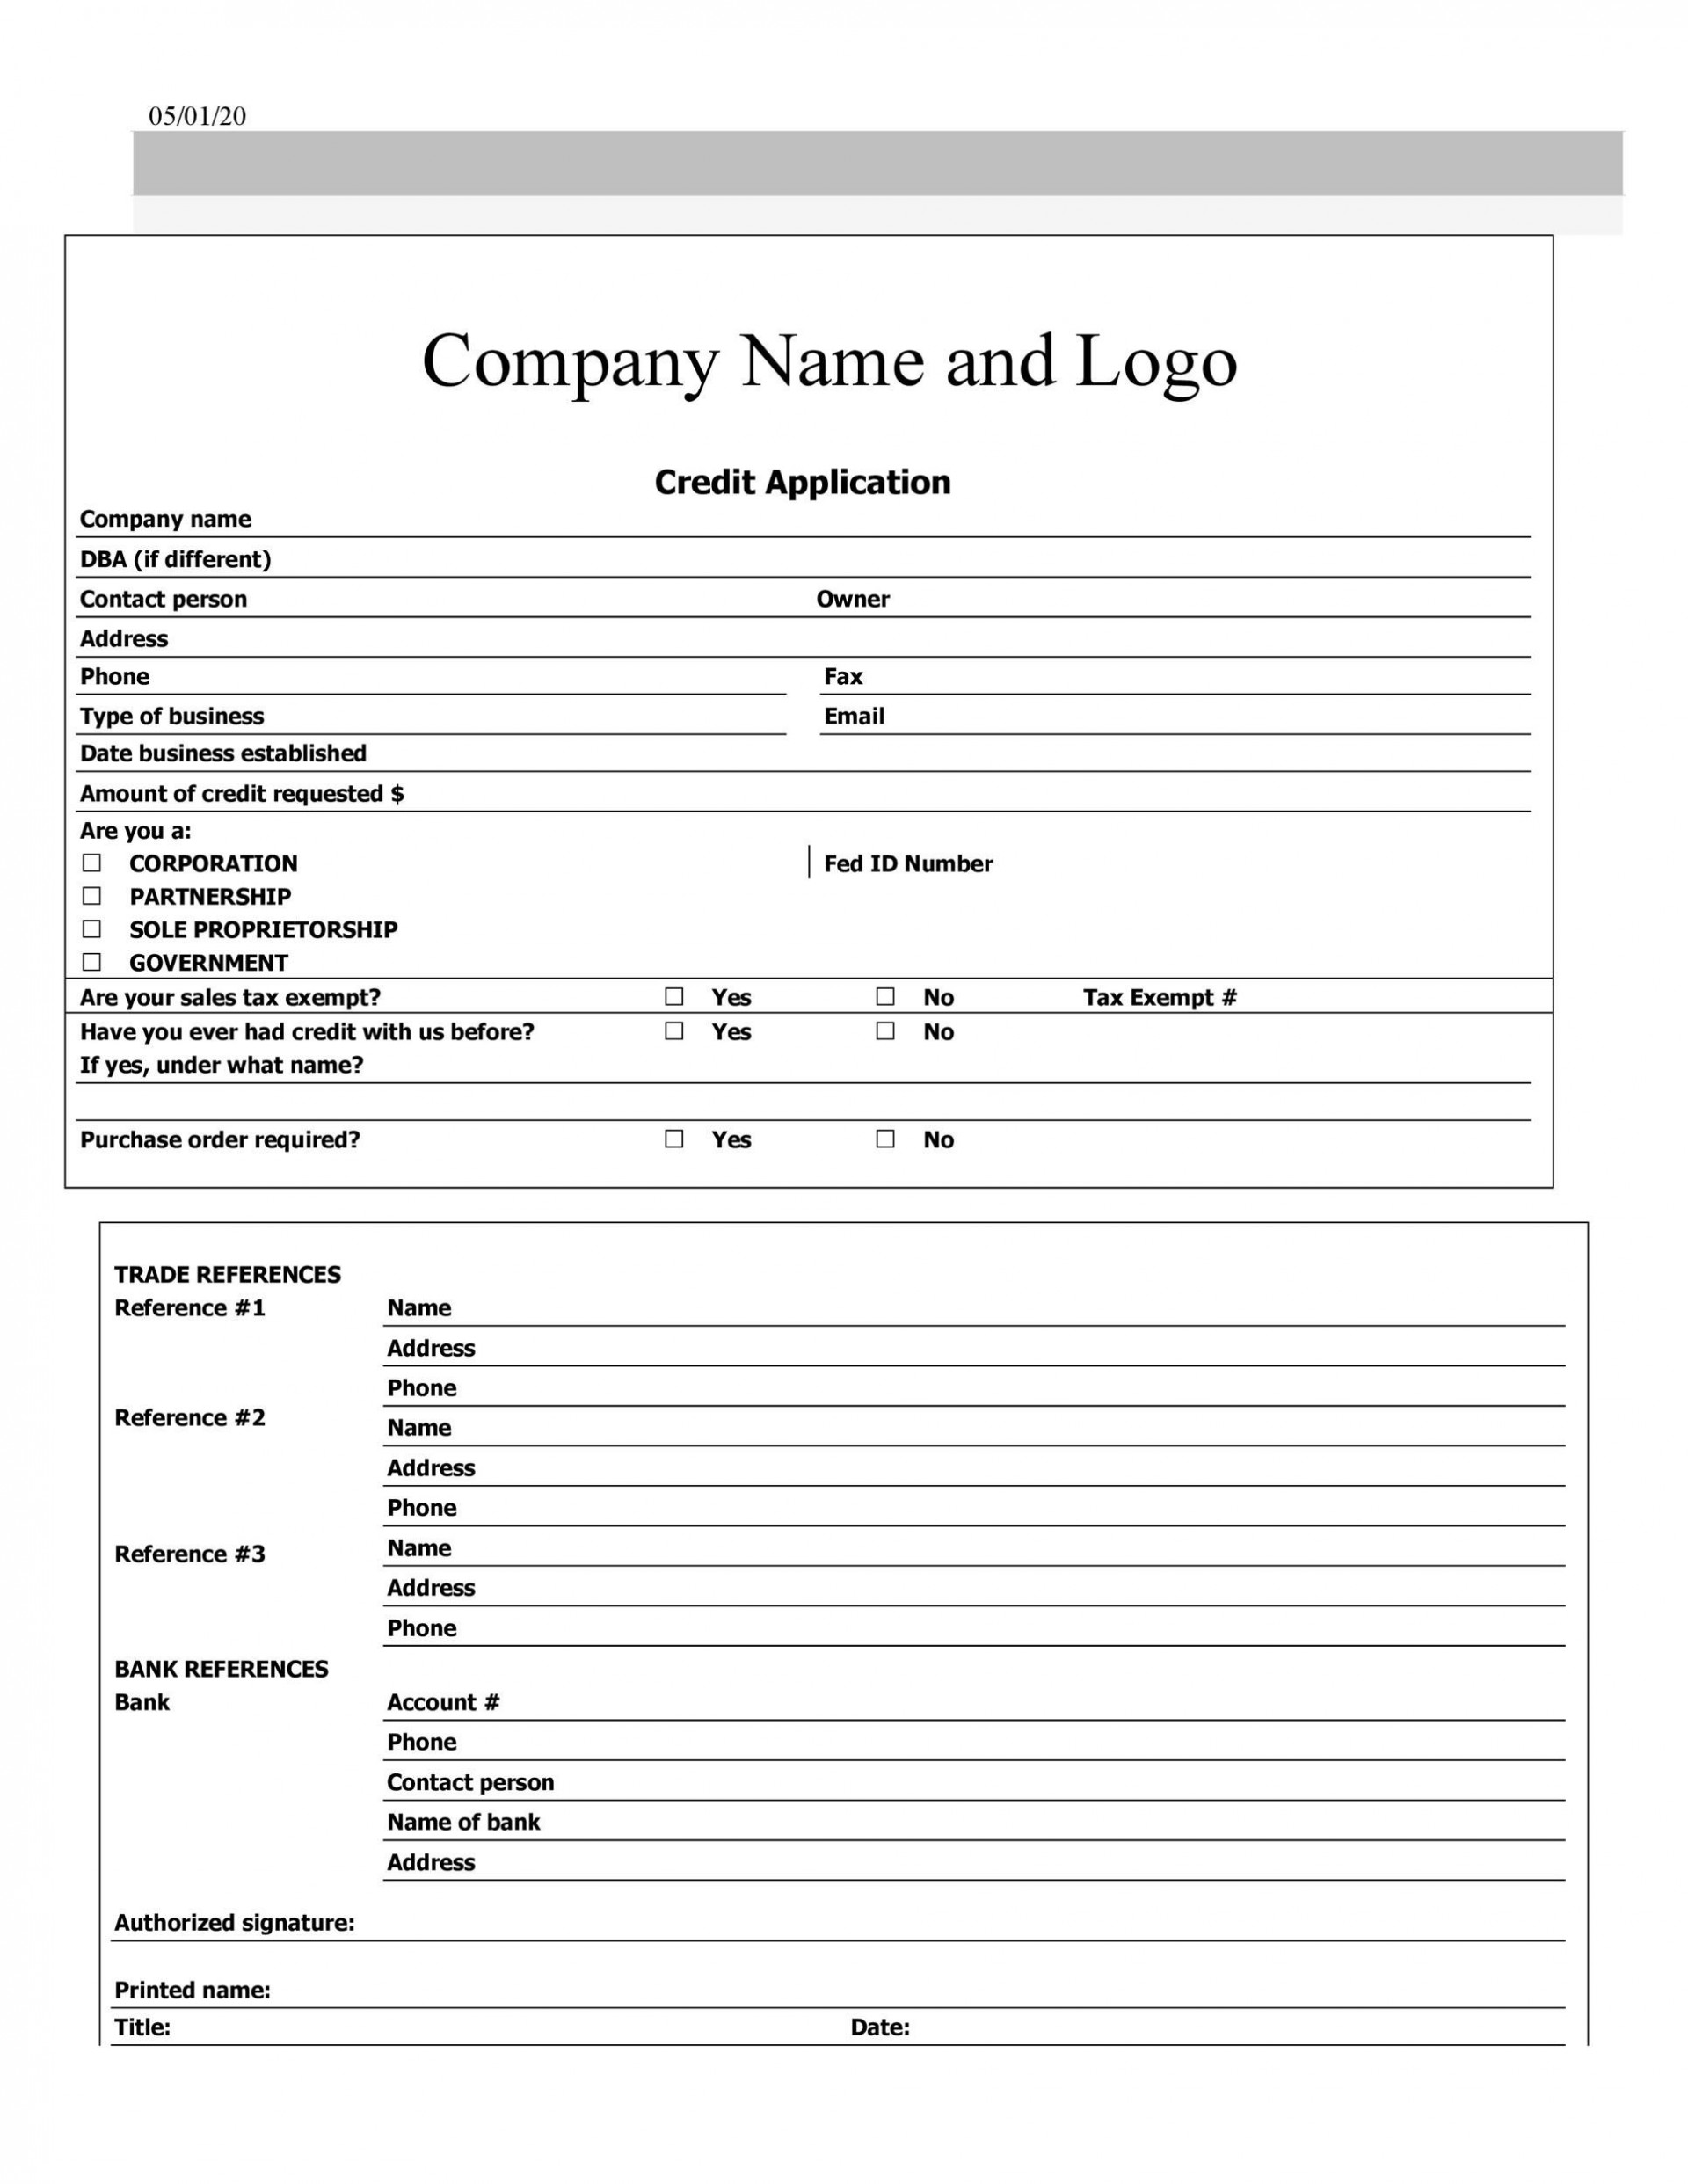 008 Remarkable Busines Credit Application Template South Africa Image  Form Word Free1920